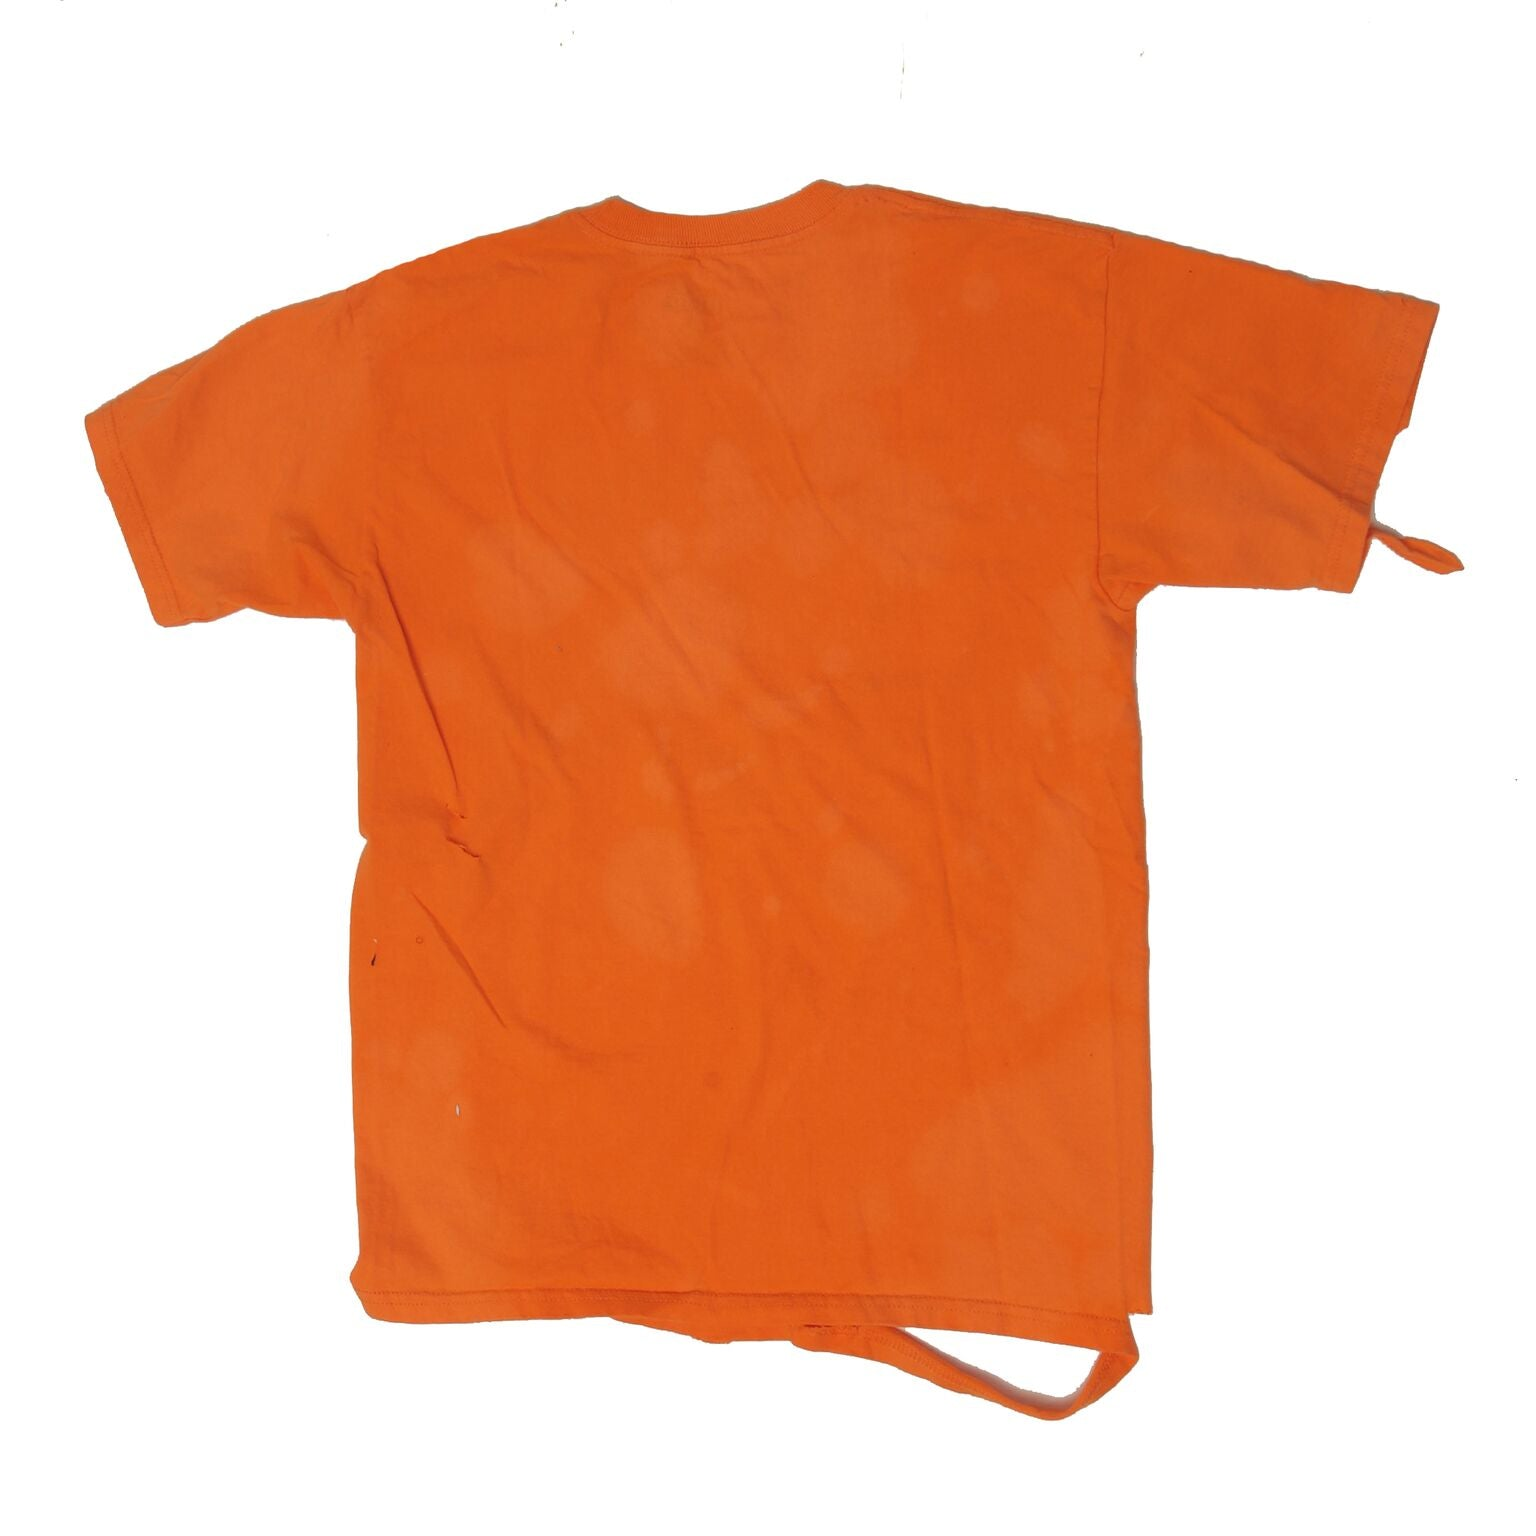 orange eminem t-shirt